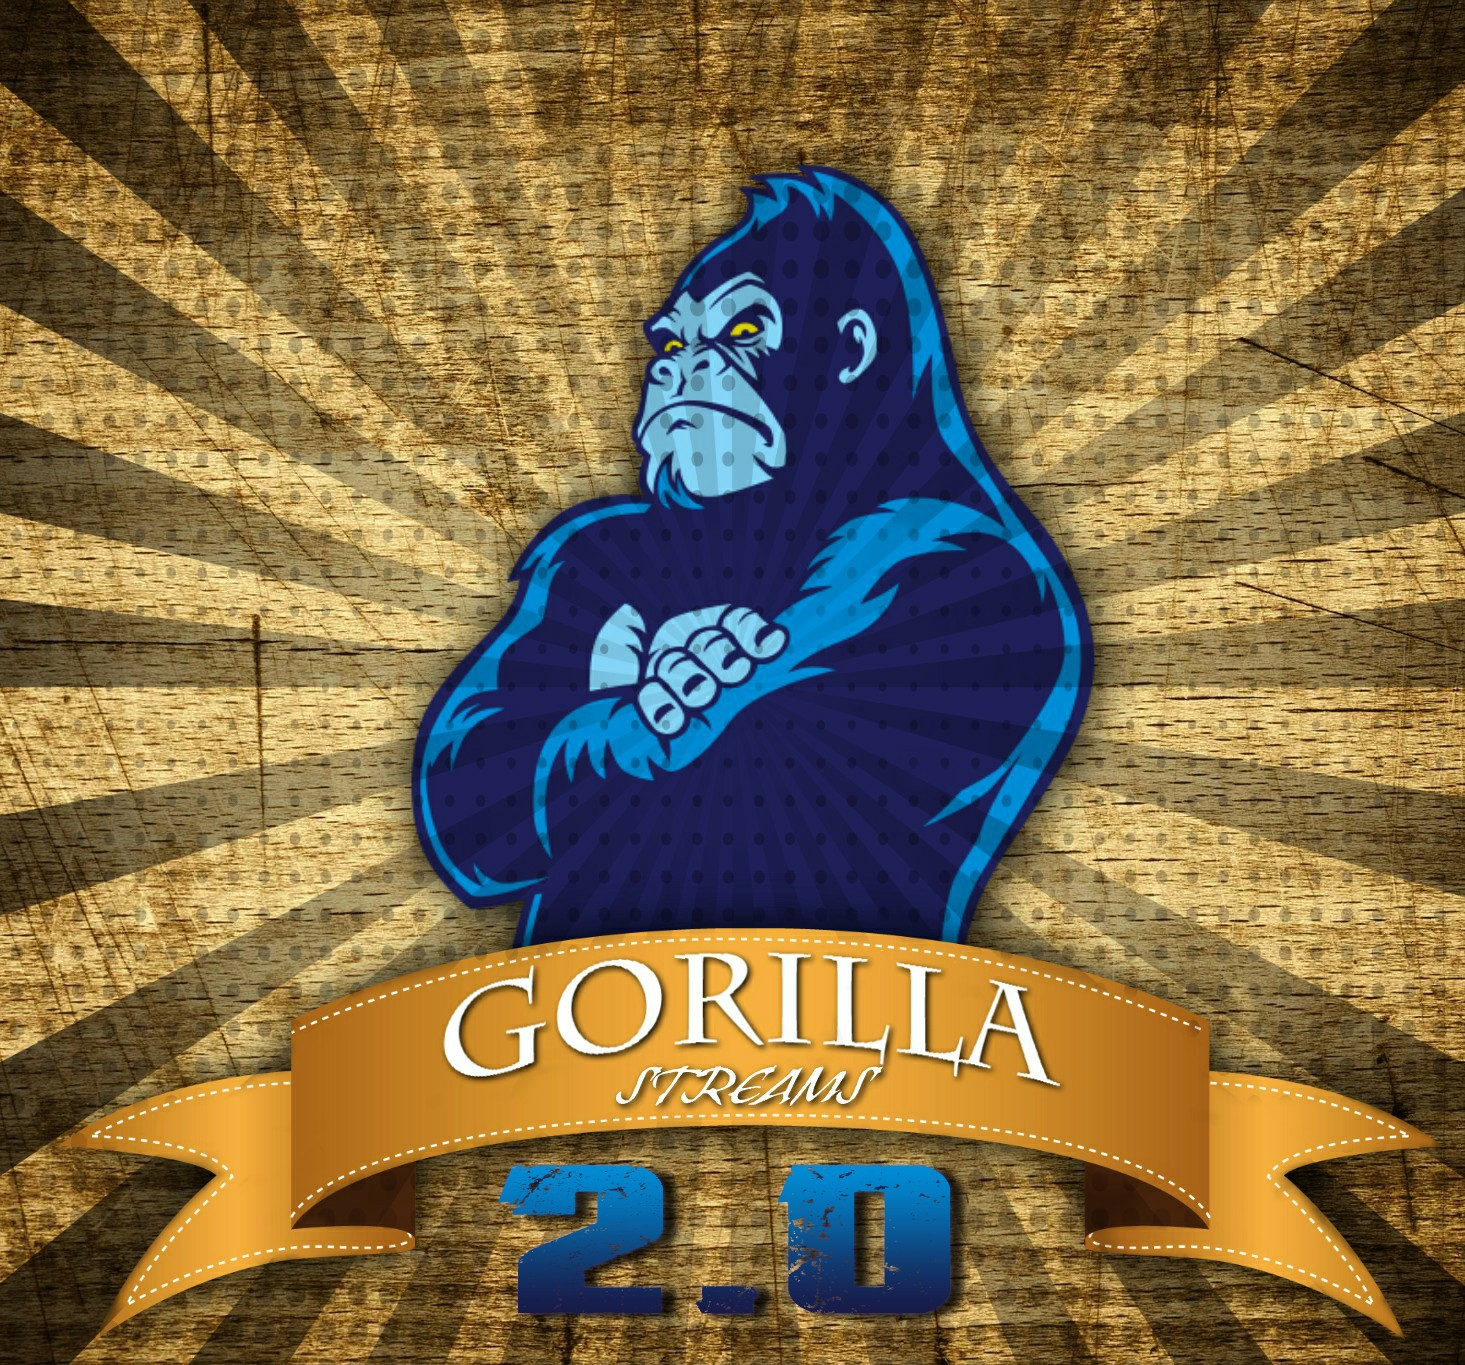 gorilla streams 2.0